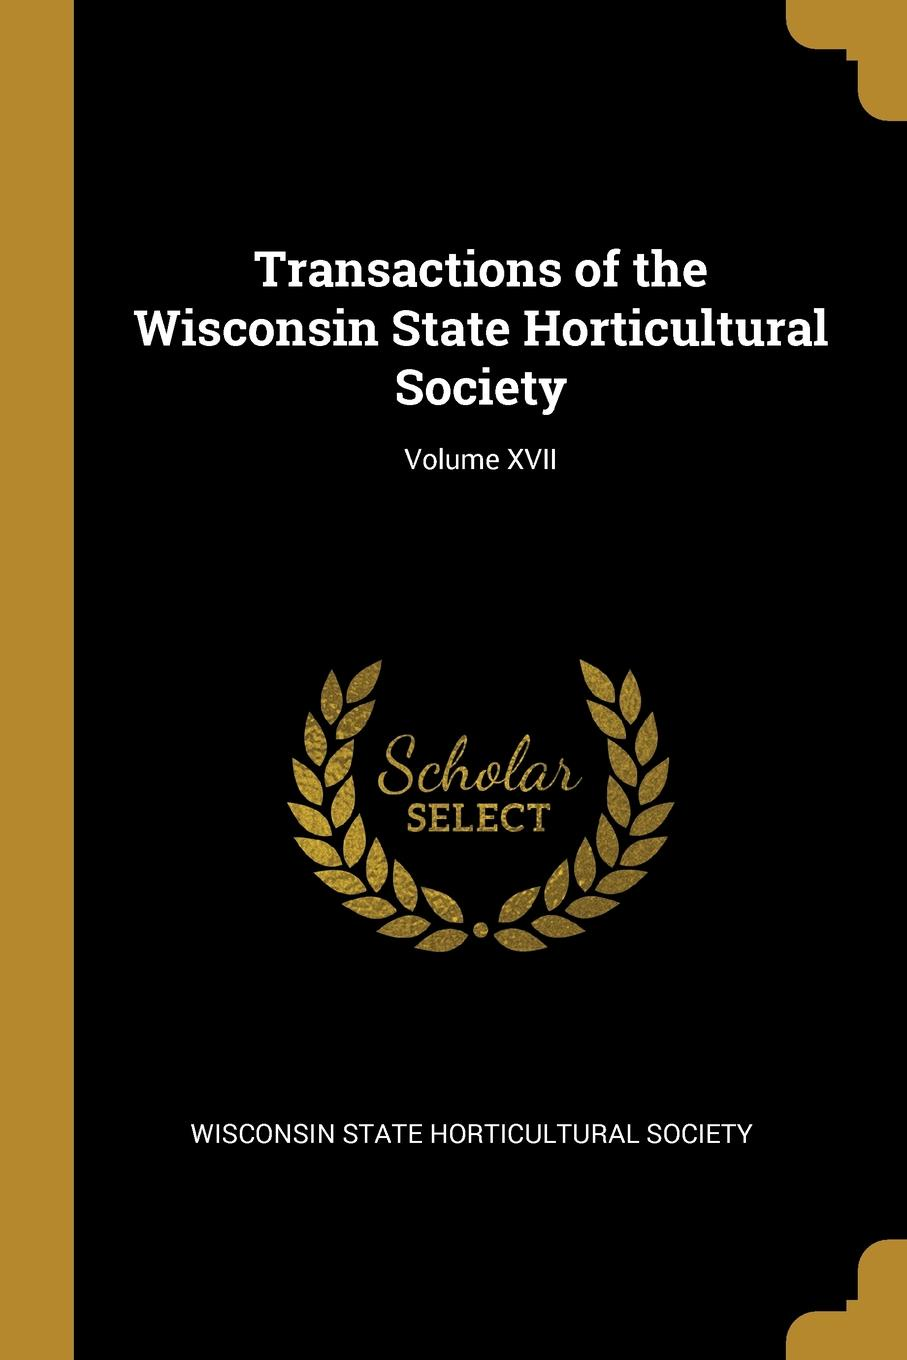 Wisconsin State Horticultural Society Transactions of the Wisconsin State Horticultural Society; Volume XVII